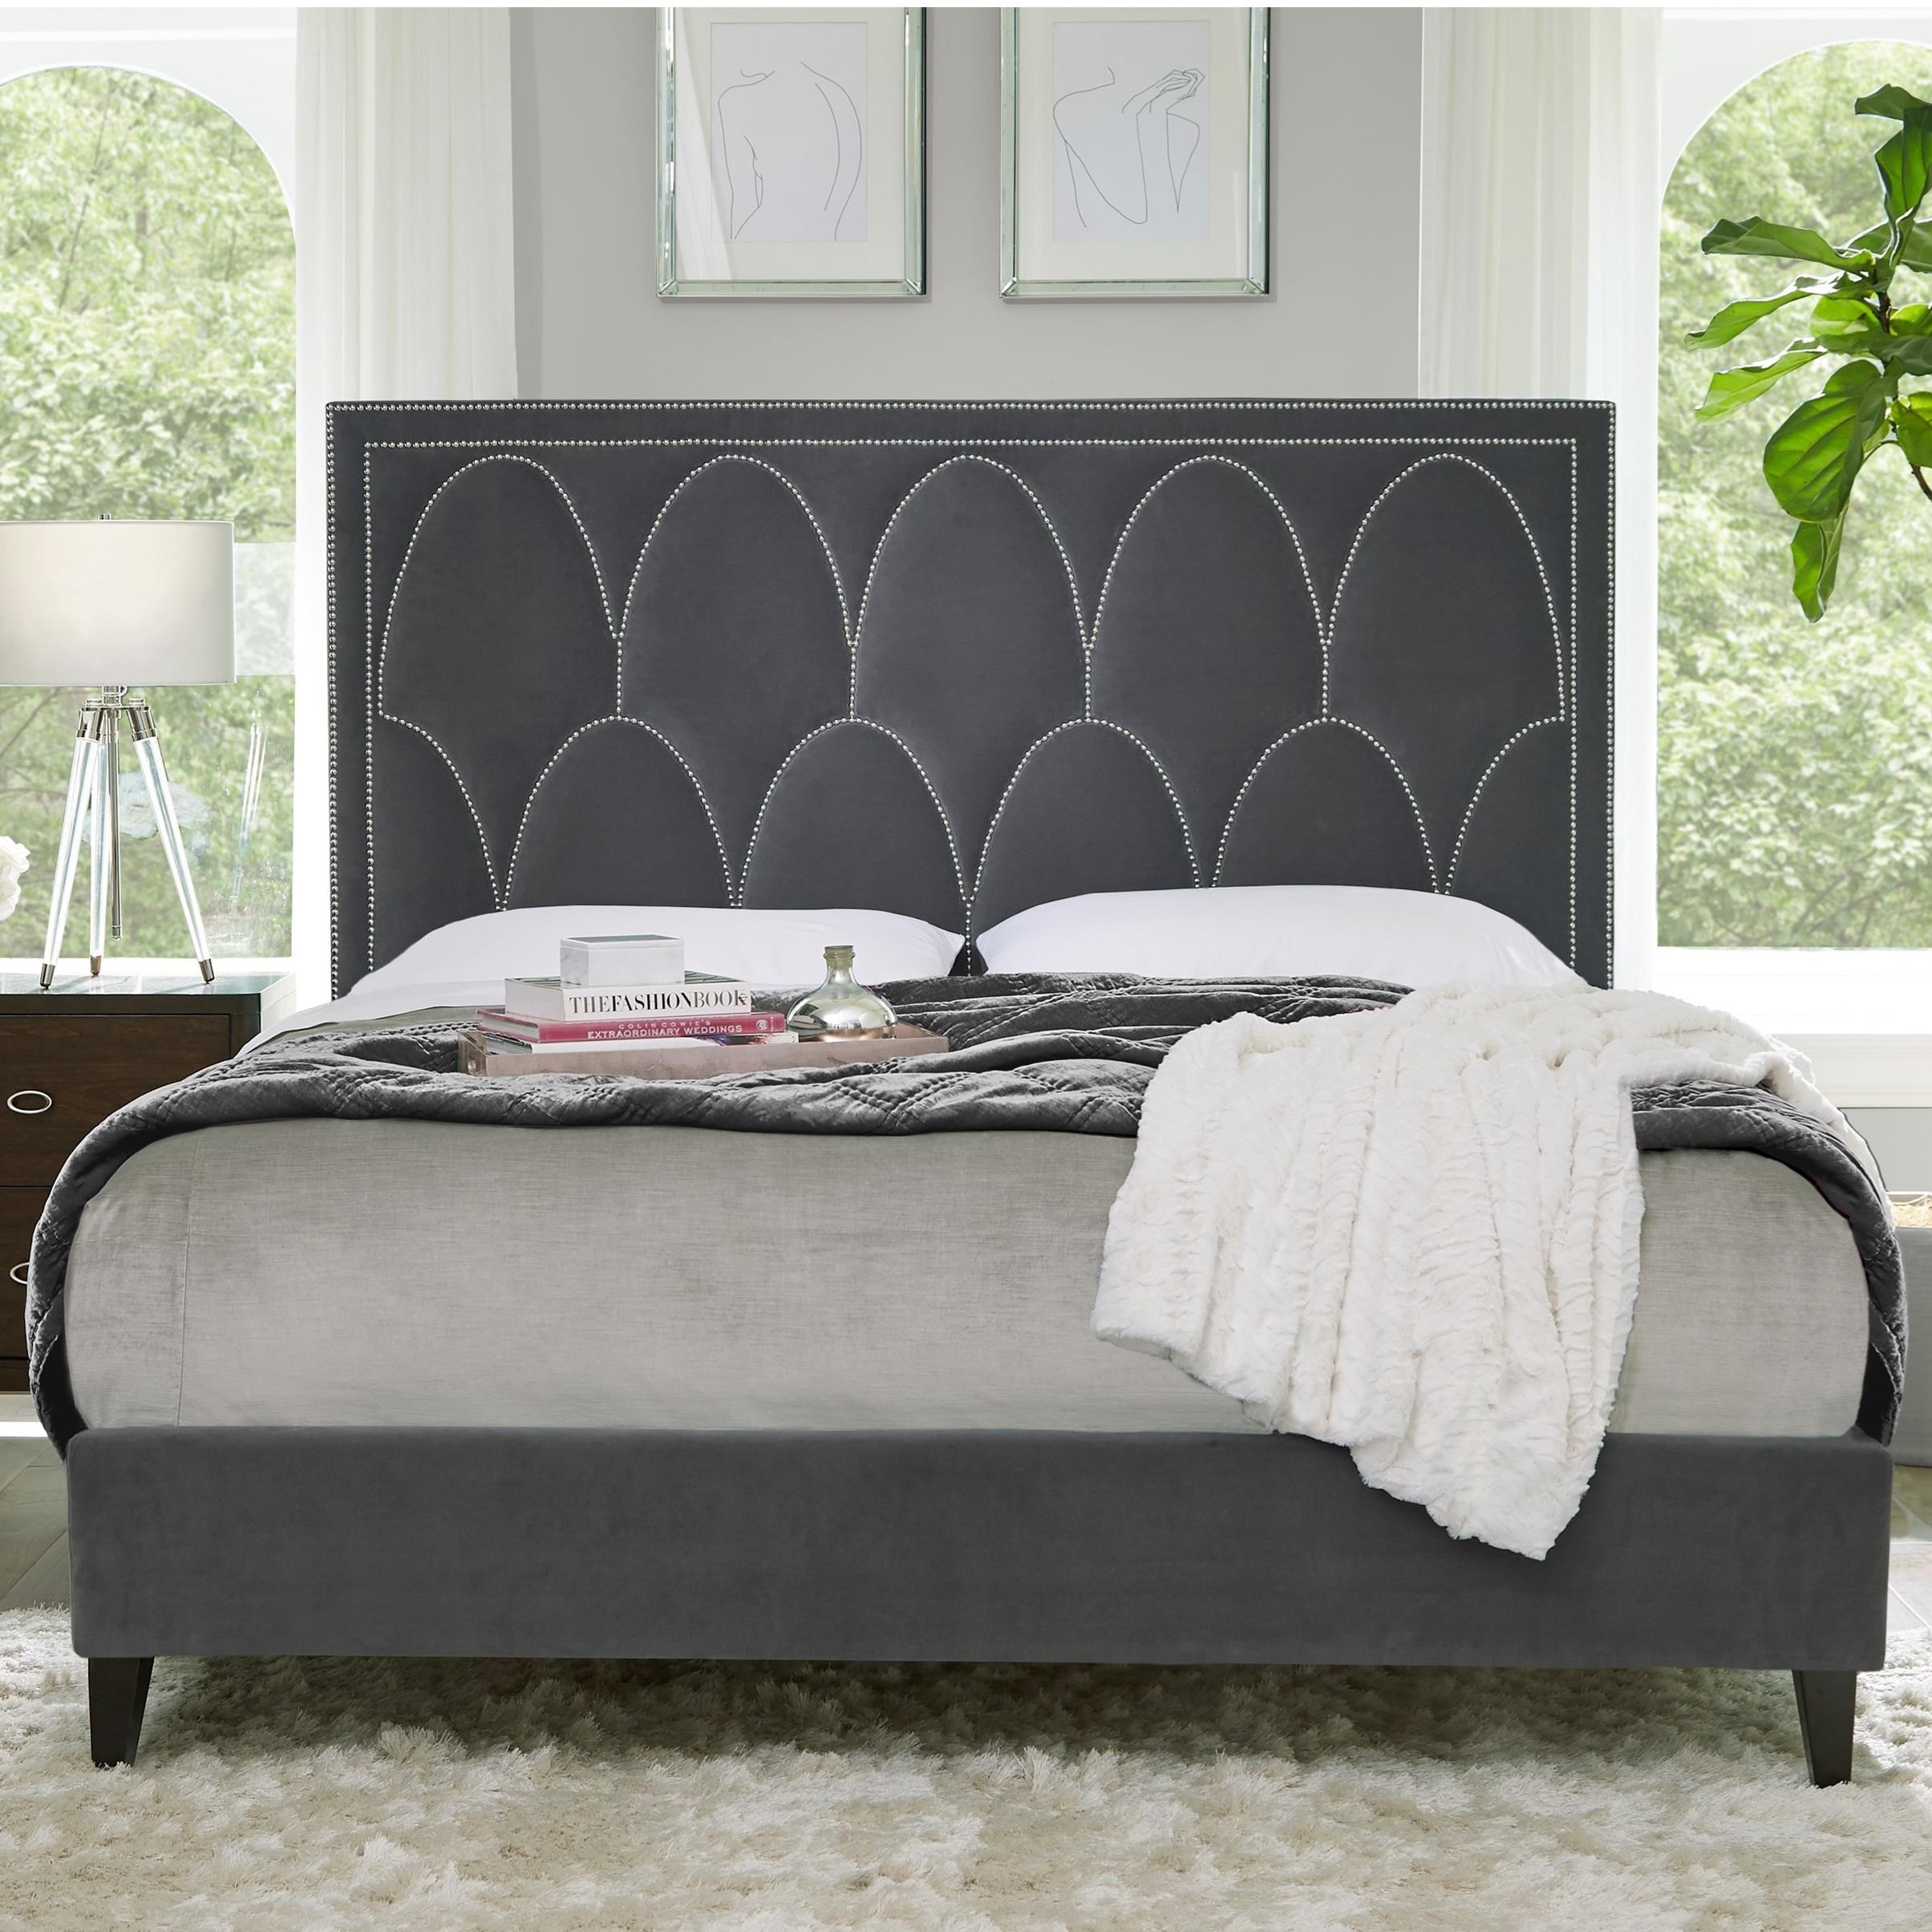 Delano King Upholstered Bed by Standard Furniture at Rooms for Less